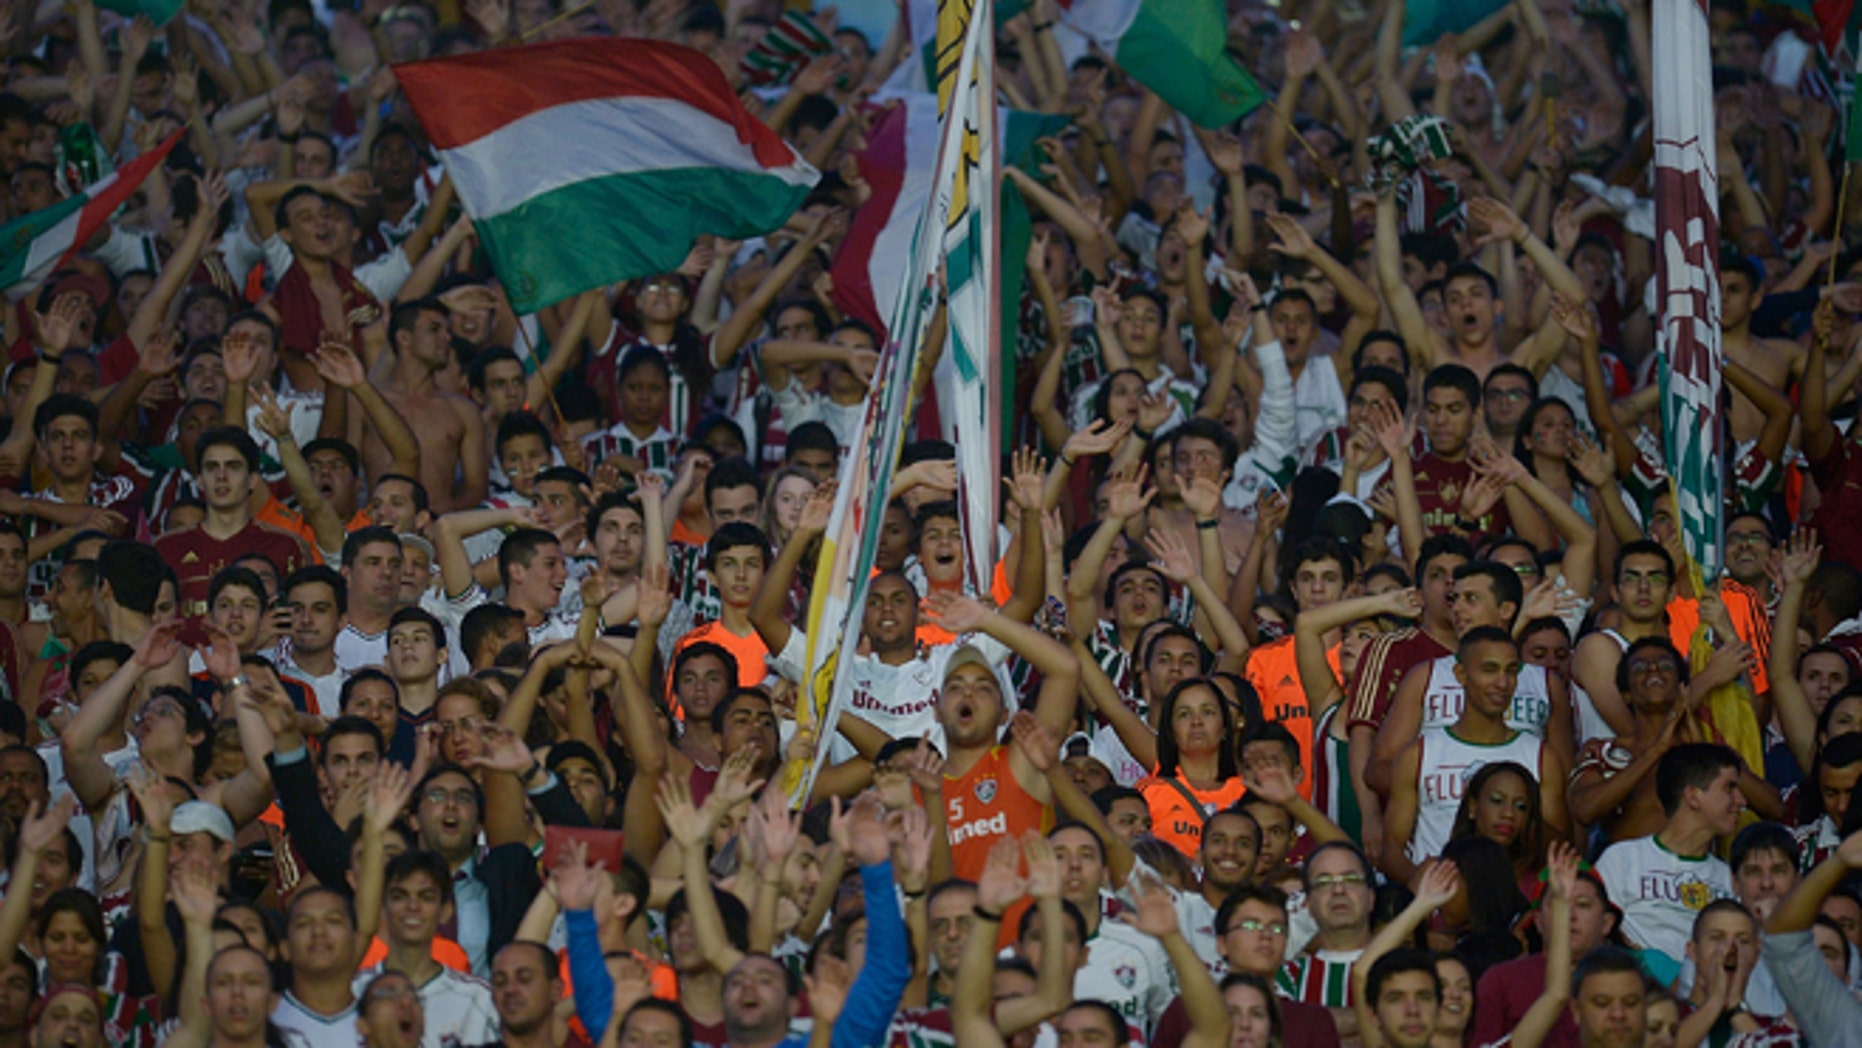 RIO DE JANEIRO, BRAZIL - NOVEMBER 14: A general view of fans of Fluminense during the match between Fluminense and Nautico for the Brazilian Series A 2013 at Maracana on November 14, 2013 in Rio de Janeiro, Brazil. (Photo by Alexandre Loureiro/Getty Images)